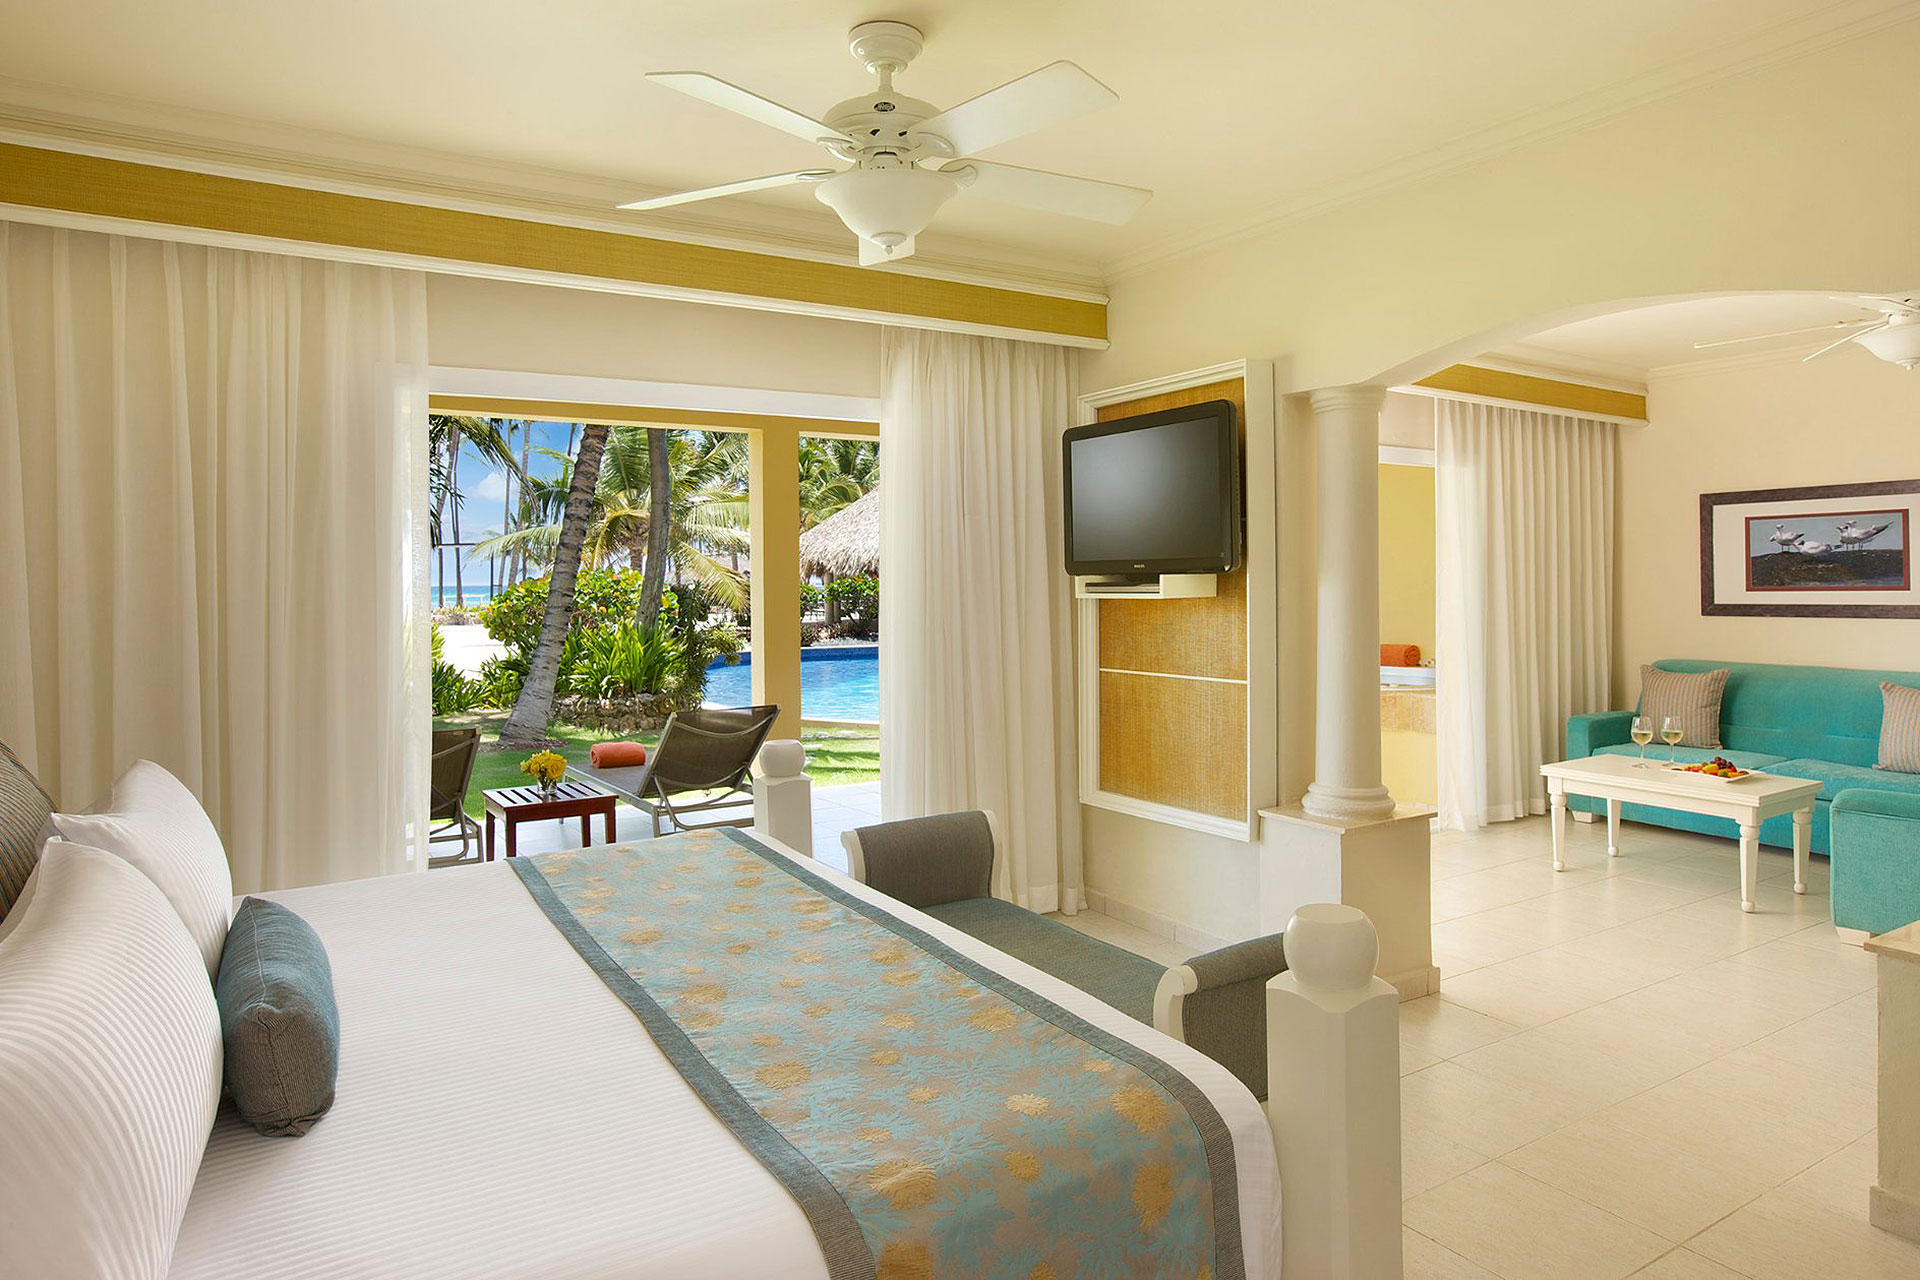 Suite at Dreams Punta Cana; Courtesy of Dreams Punta Cana